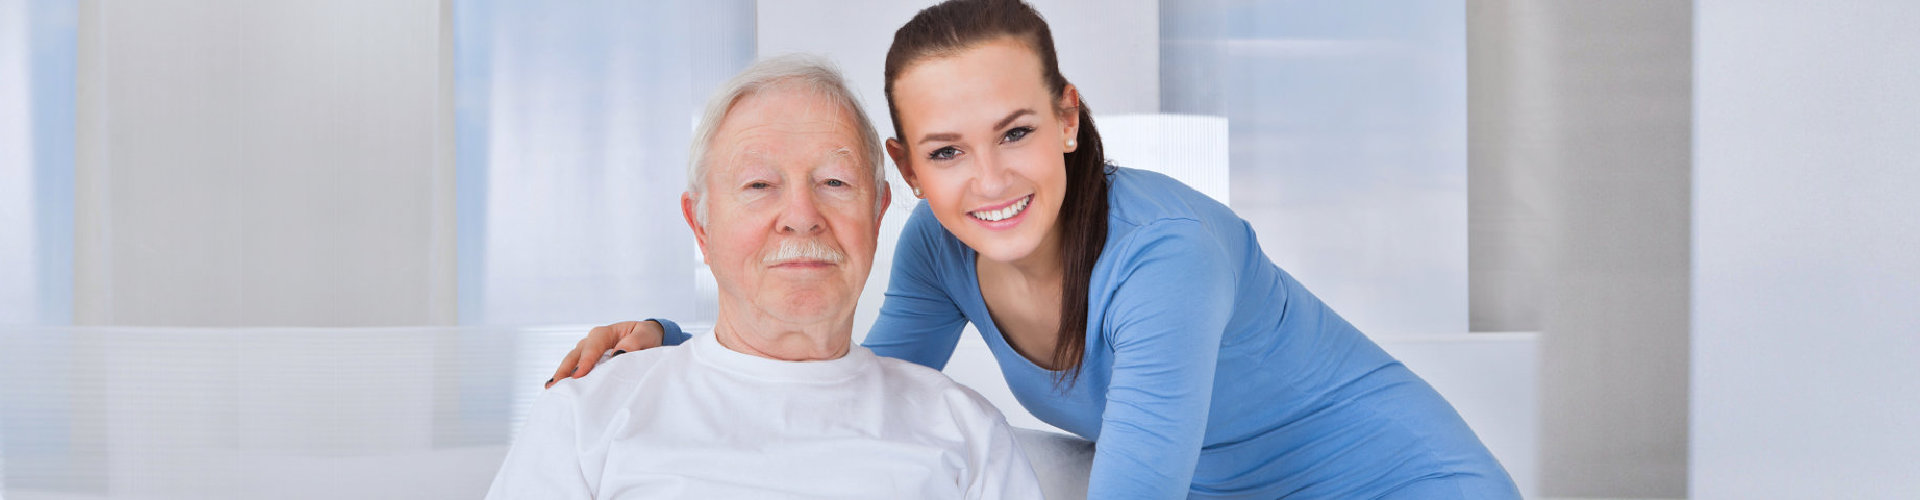 smiling young female with her grand father